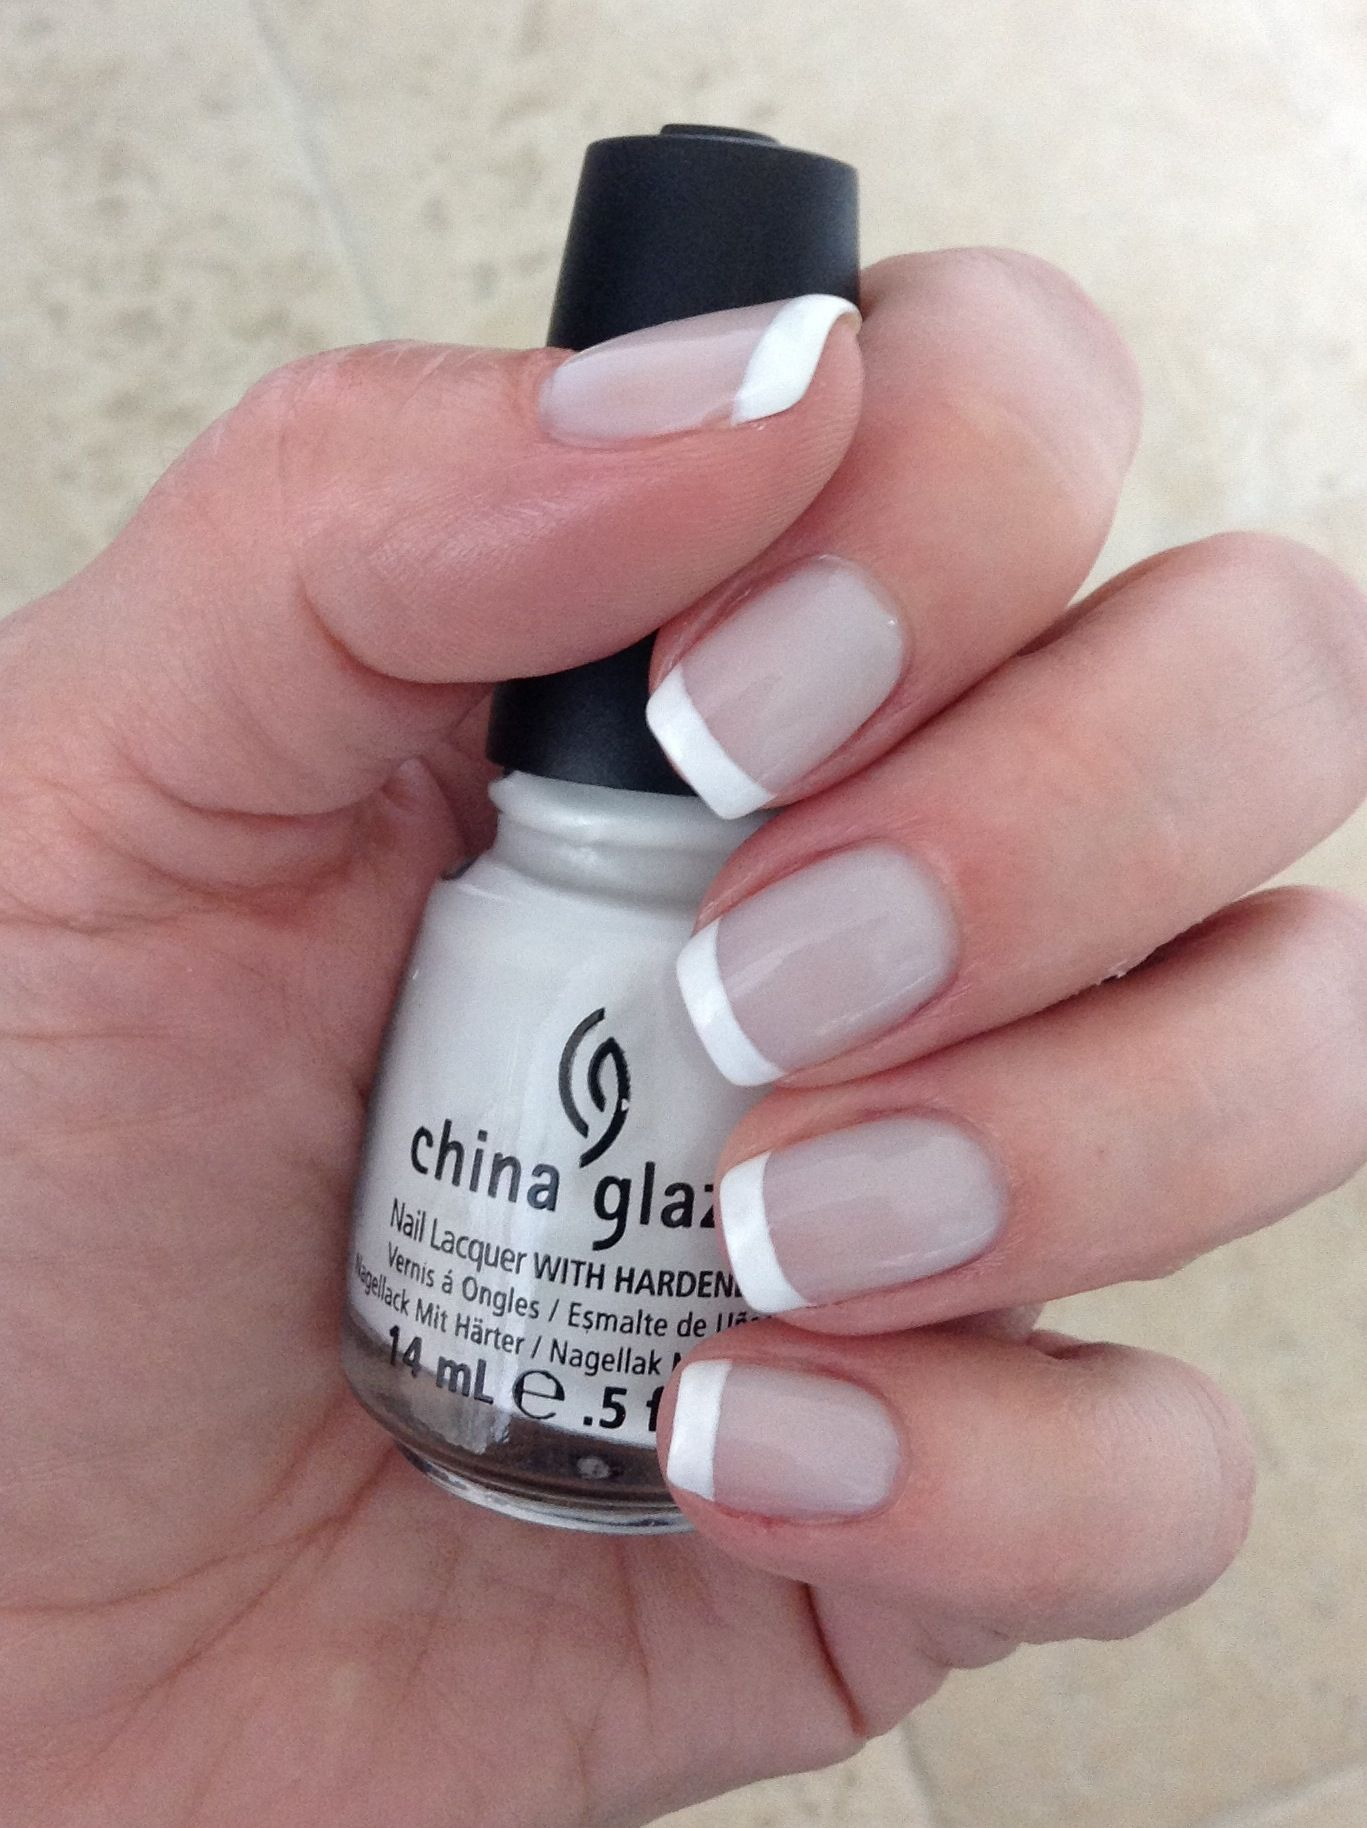 nails haute gel polish titan turned french mani with china glaze